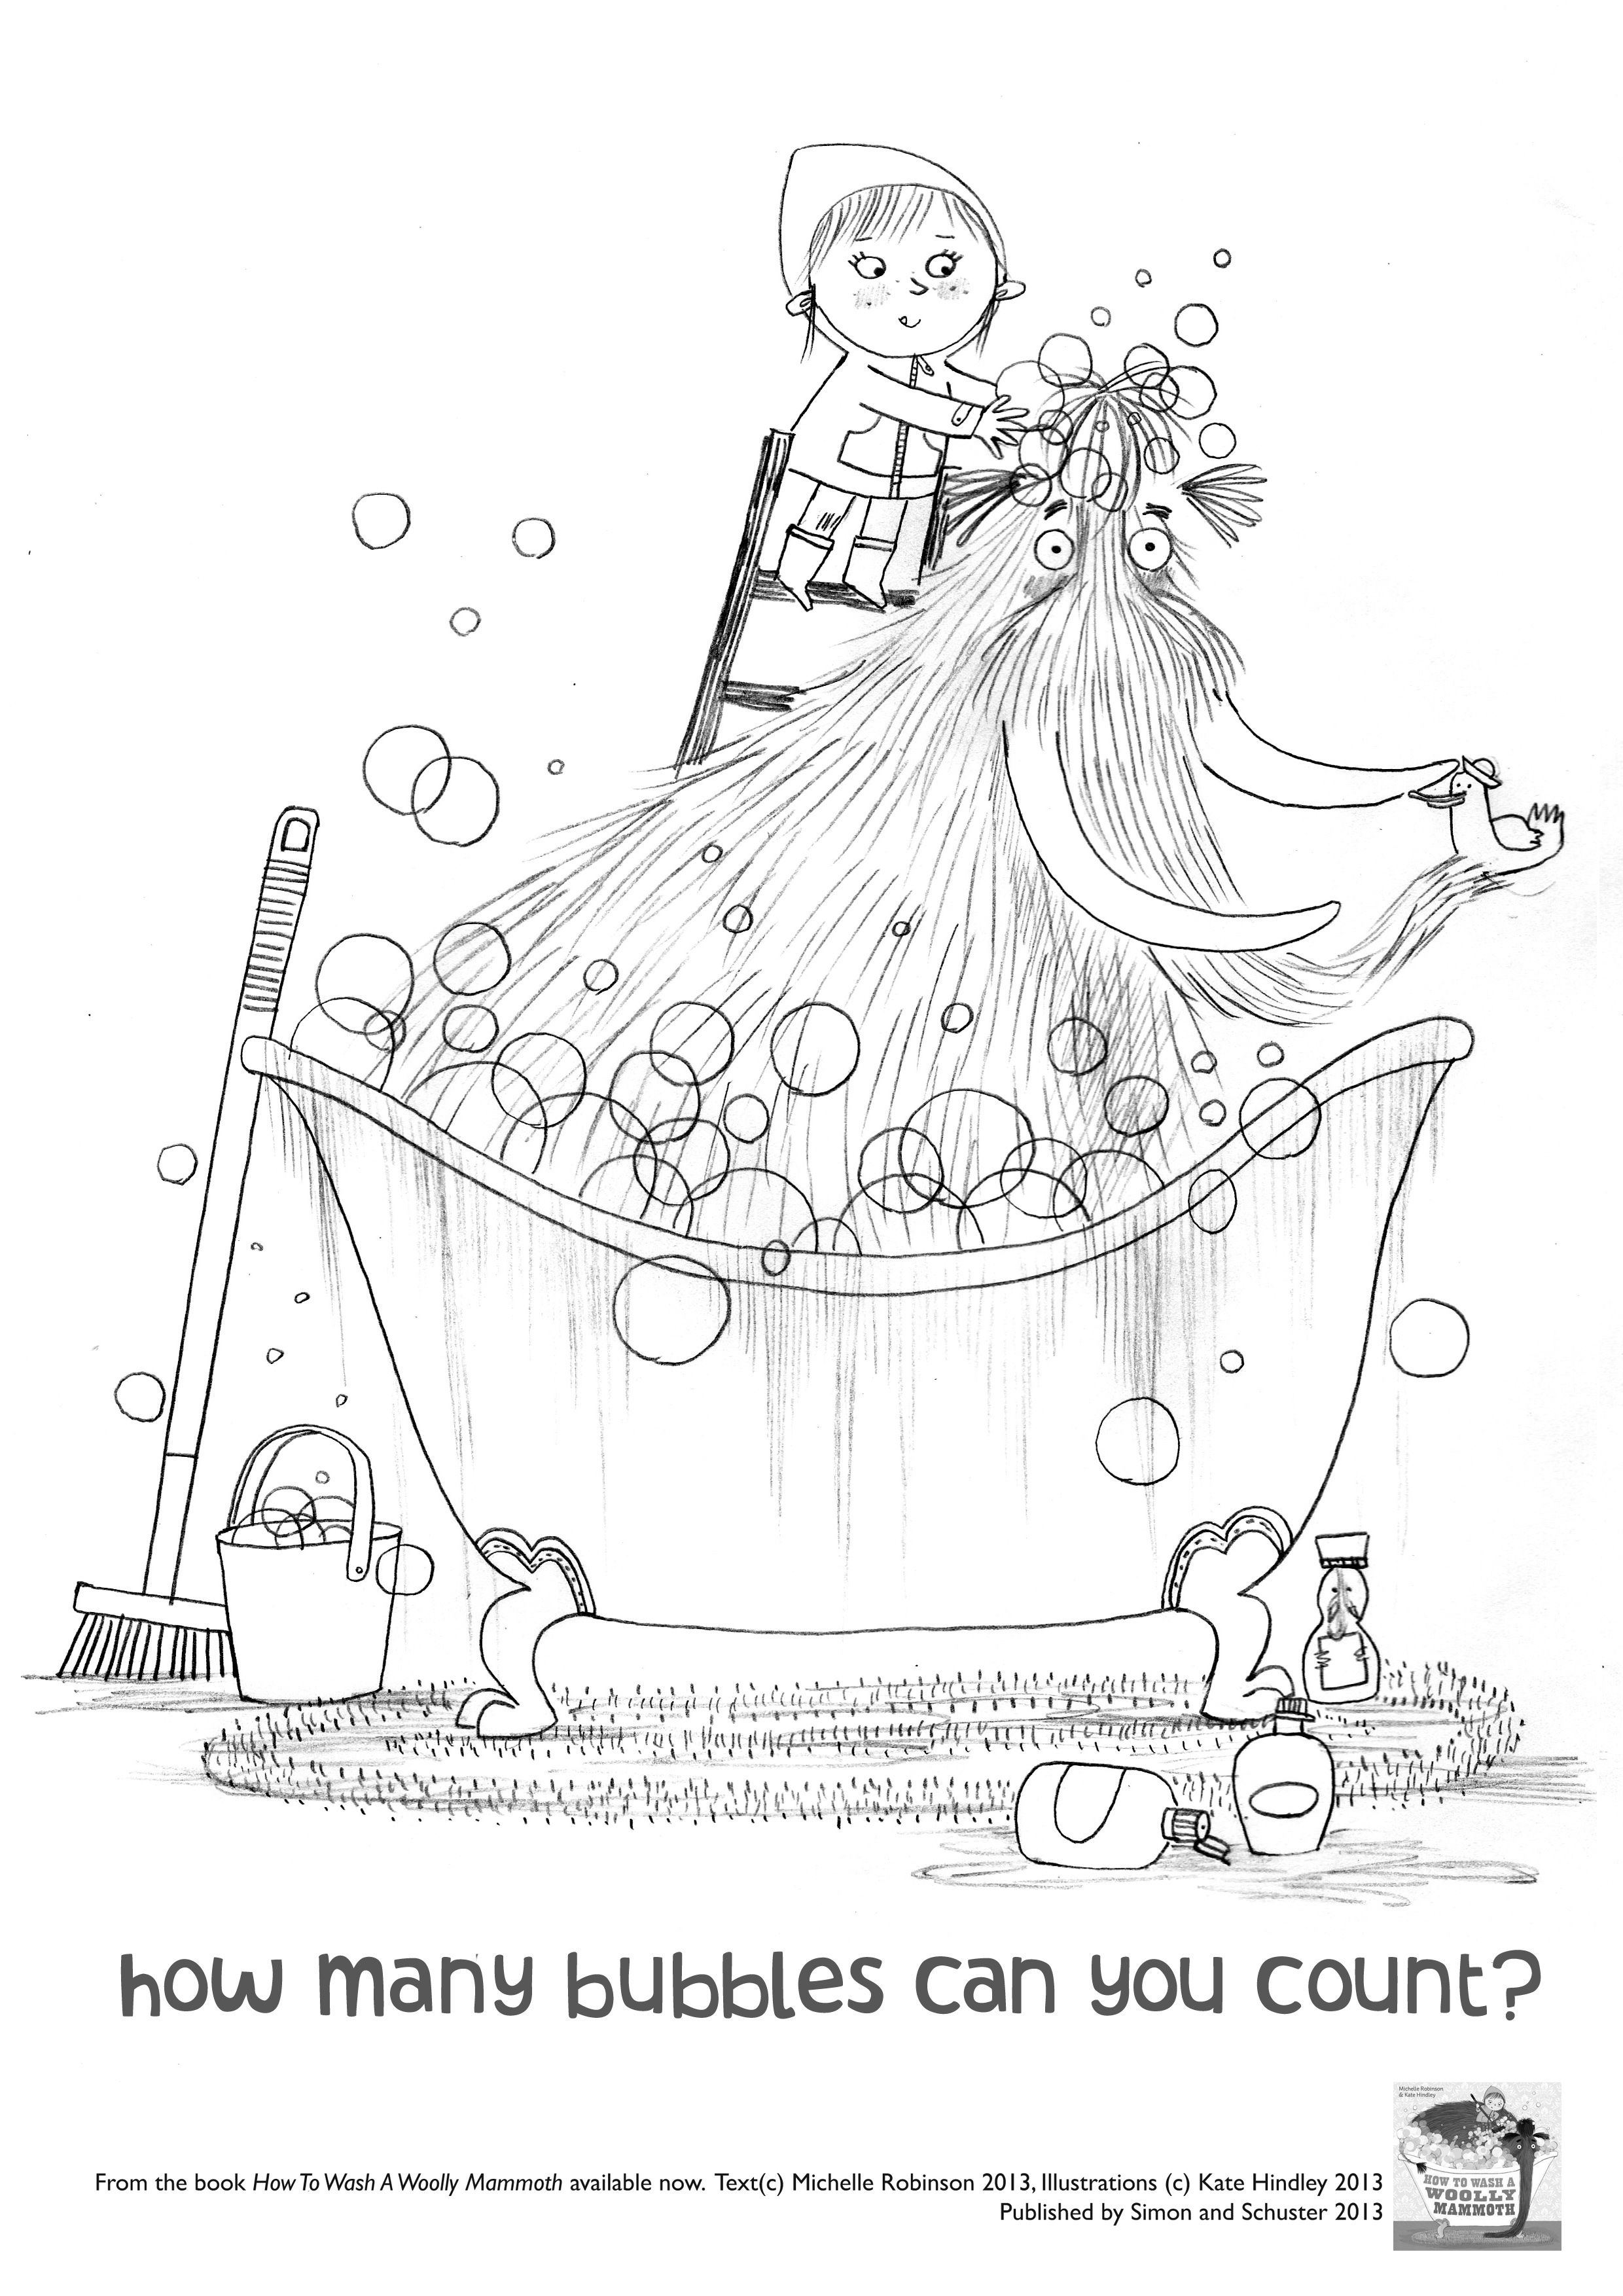 Bubble Trouble From The Book How To Wash A Woolly Mammoth By Me